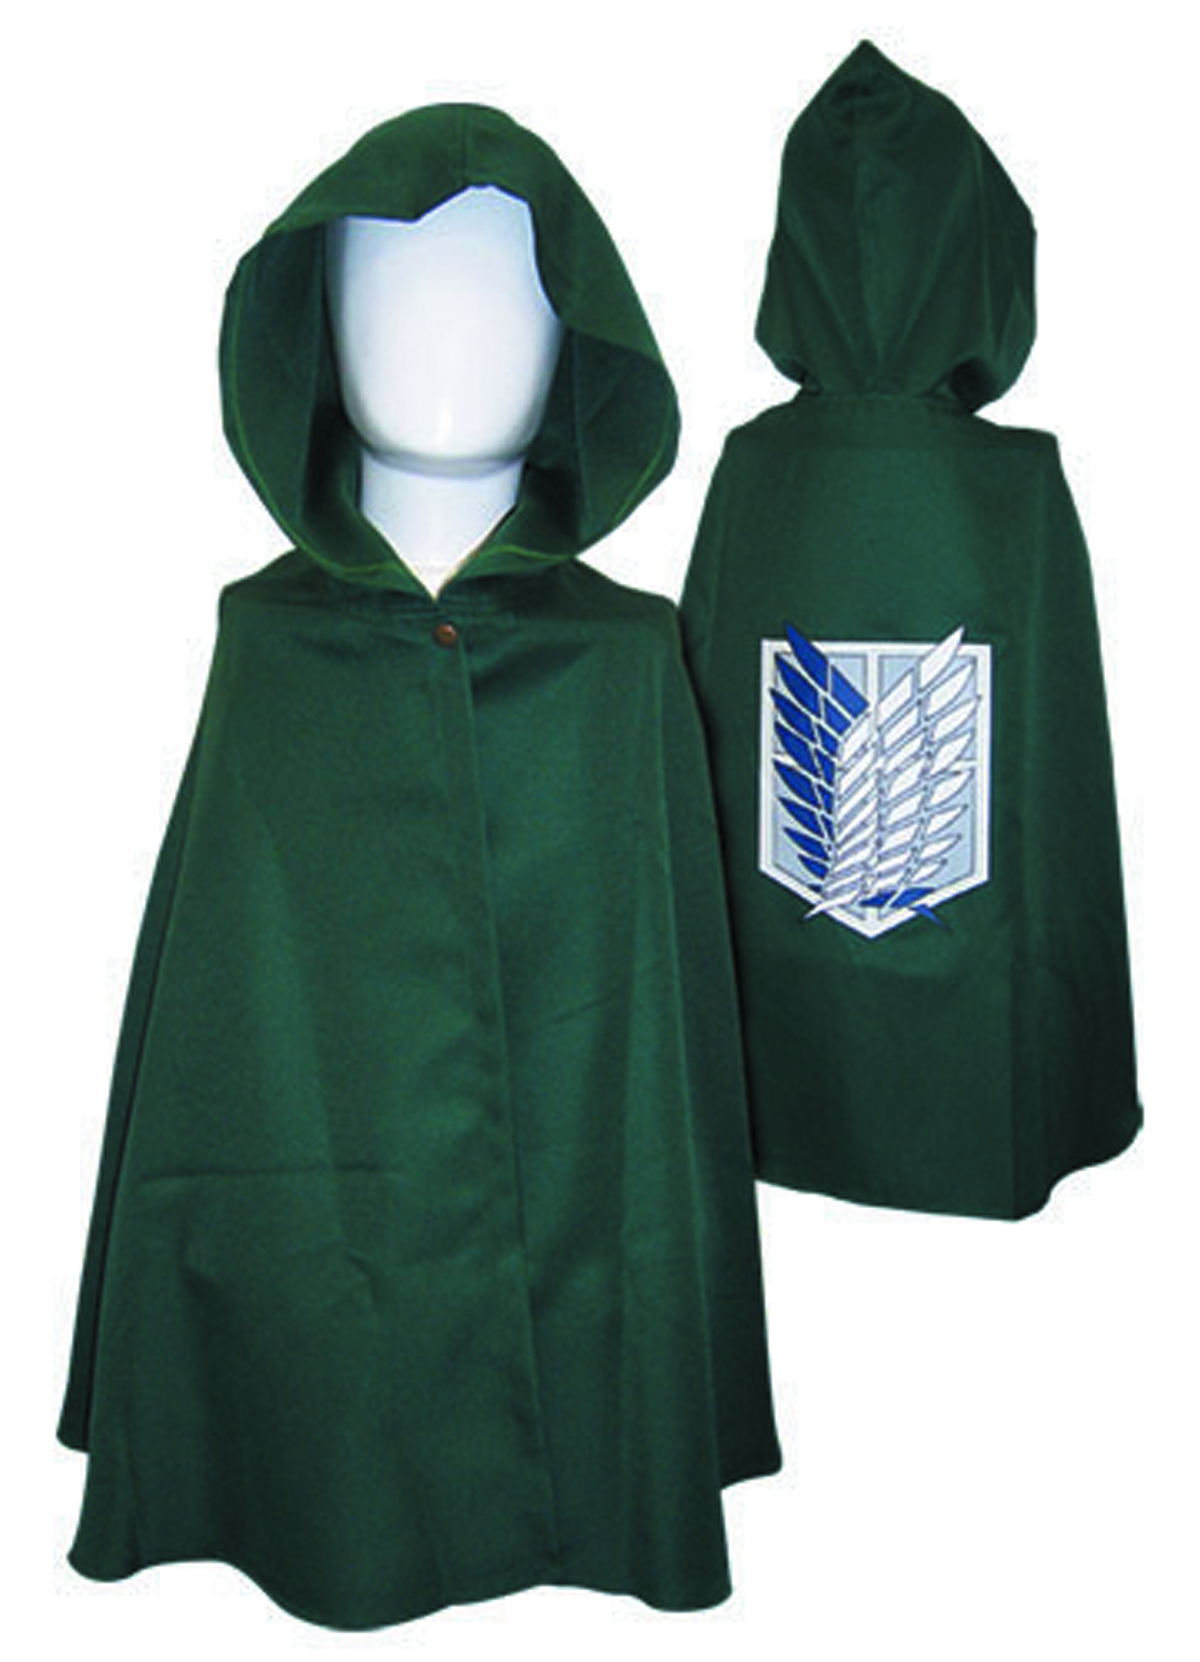 ATTACK ON TITAN SCOUTING LEGION HOODED CLOAK